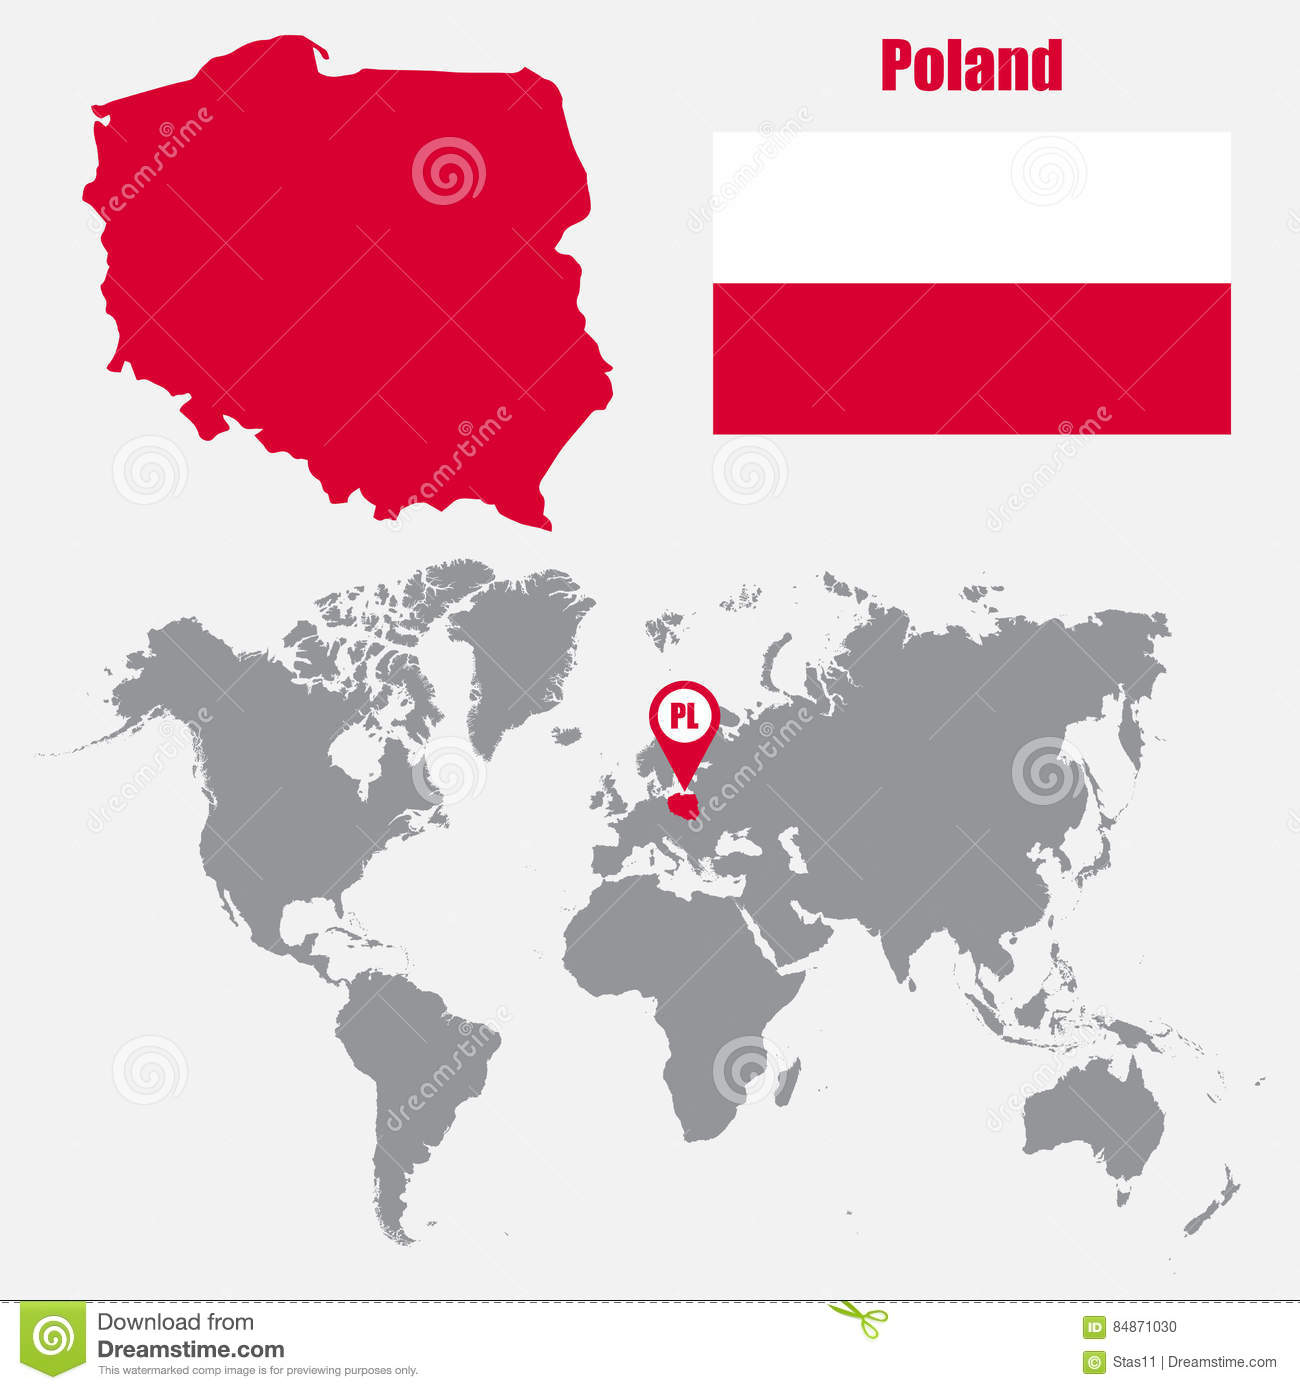 Poland On The World Map.Poland Map On A World Map With Flag And Map Pointer Vector